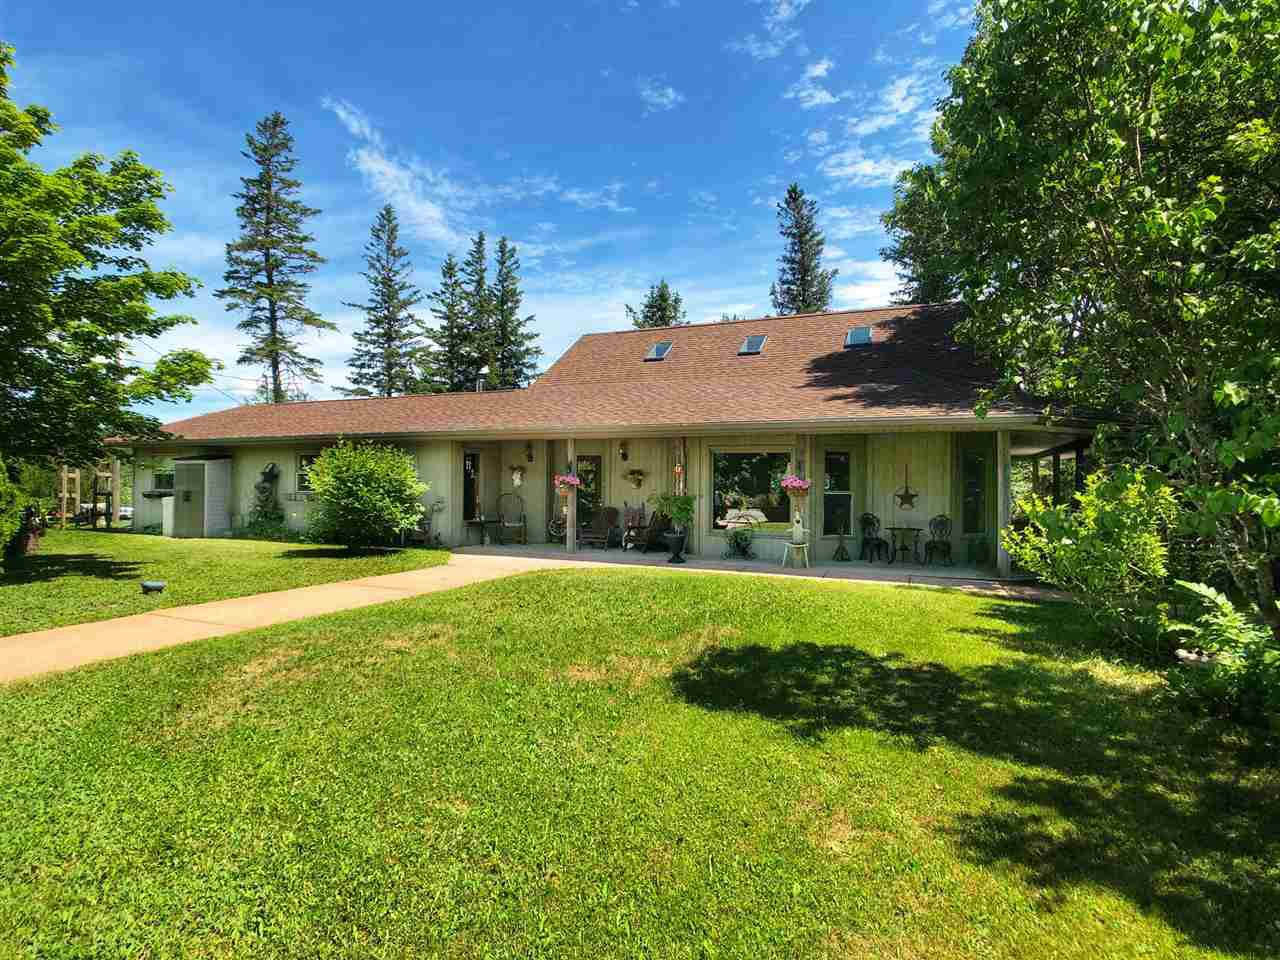 Main Photo: 72 Beech Brook Road in Ardoise: 403-Hants County Residential for sale (Annapolis Valley)  : MLS®# 202013998